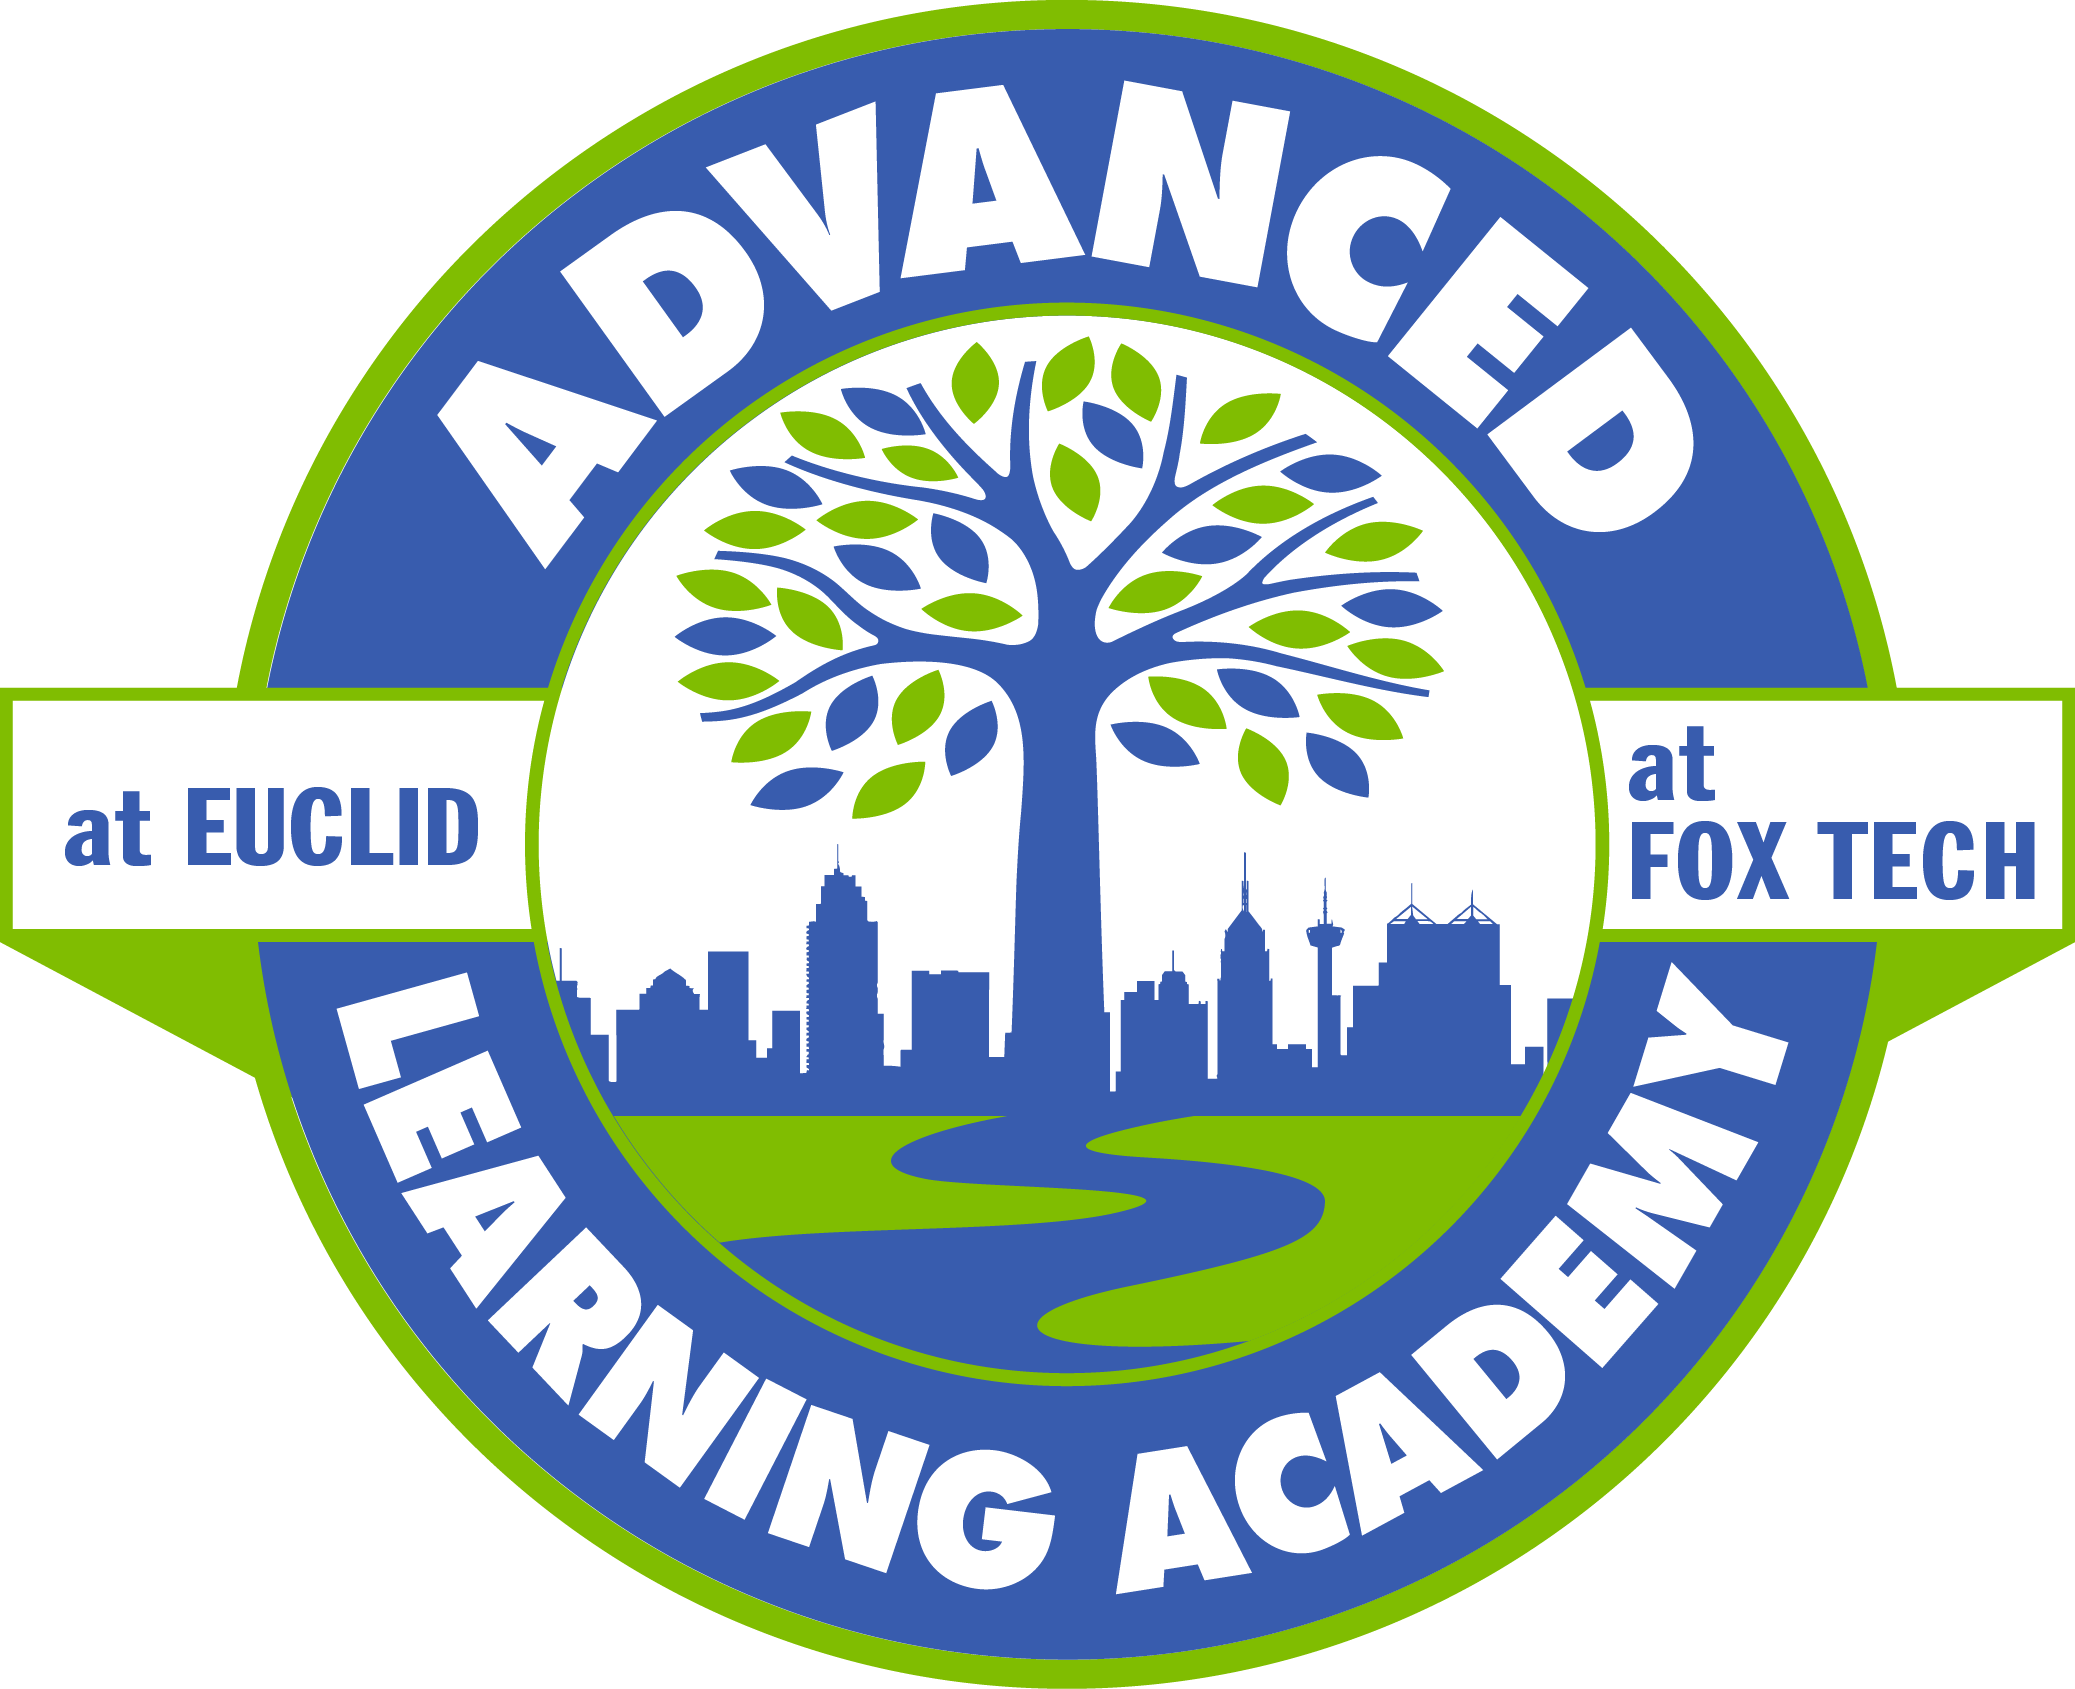 Advanced Learning Academy